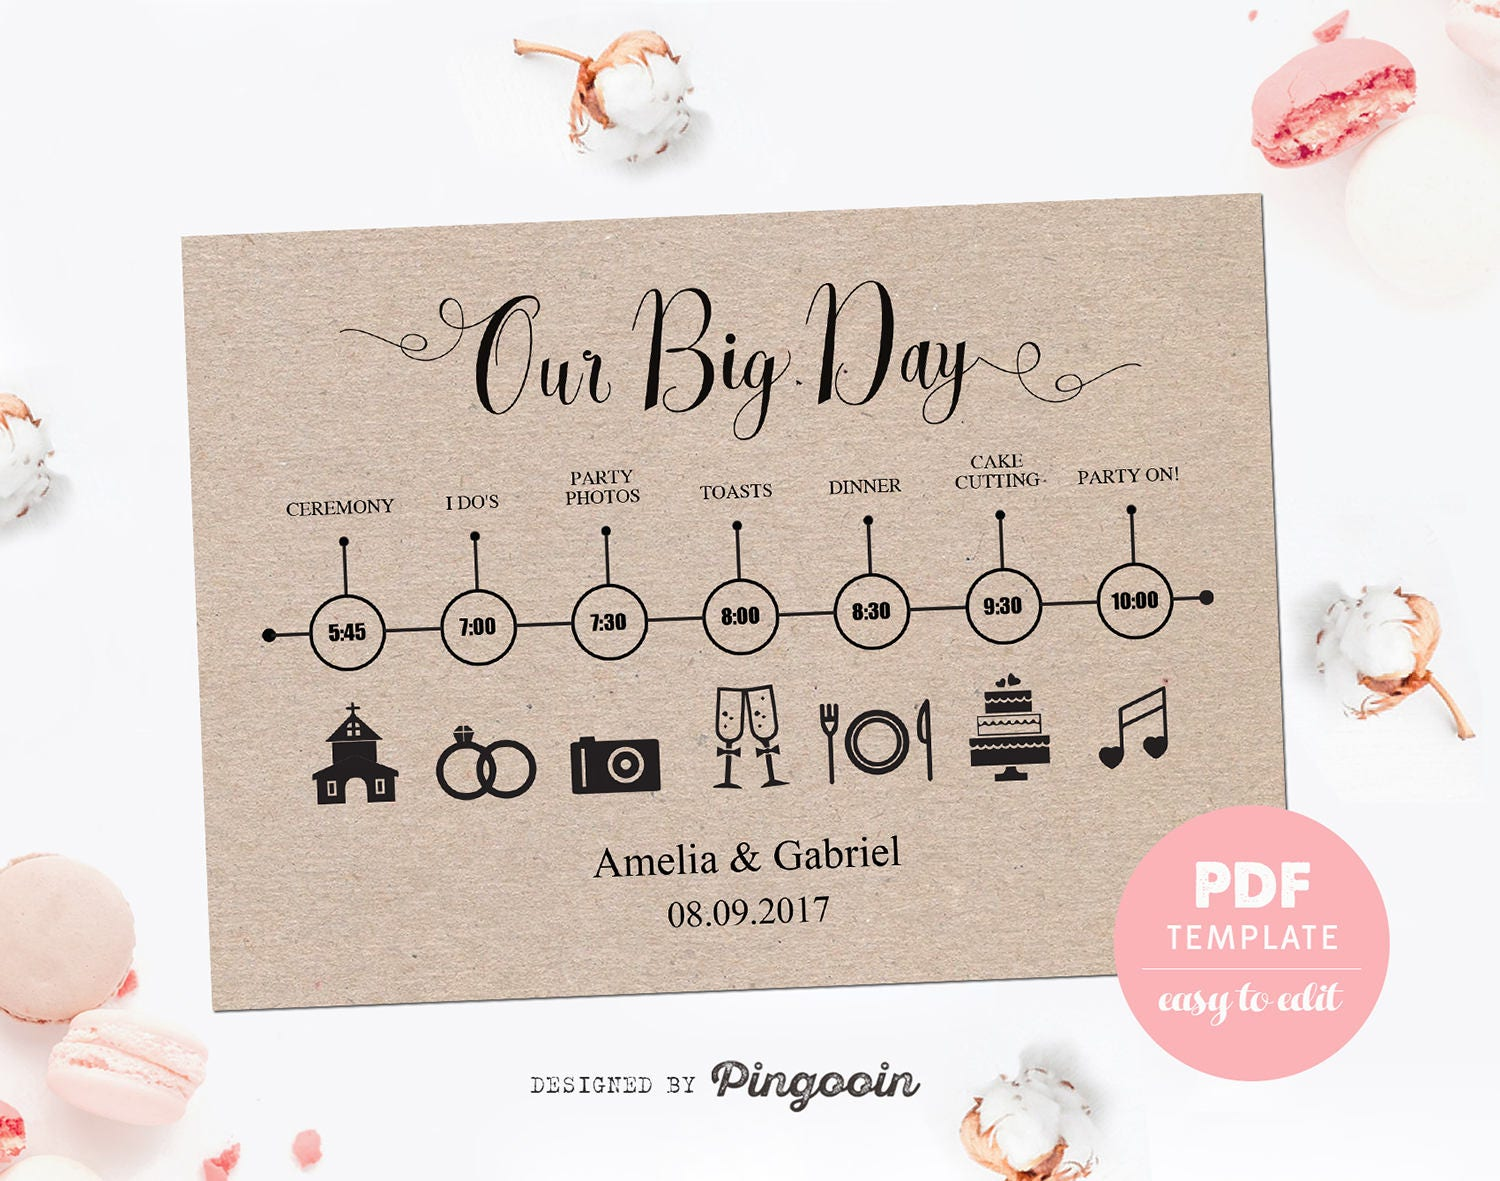 It's just a photo of Peaceful Printable Wedding Timeline